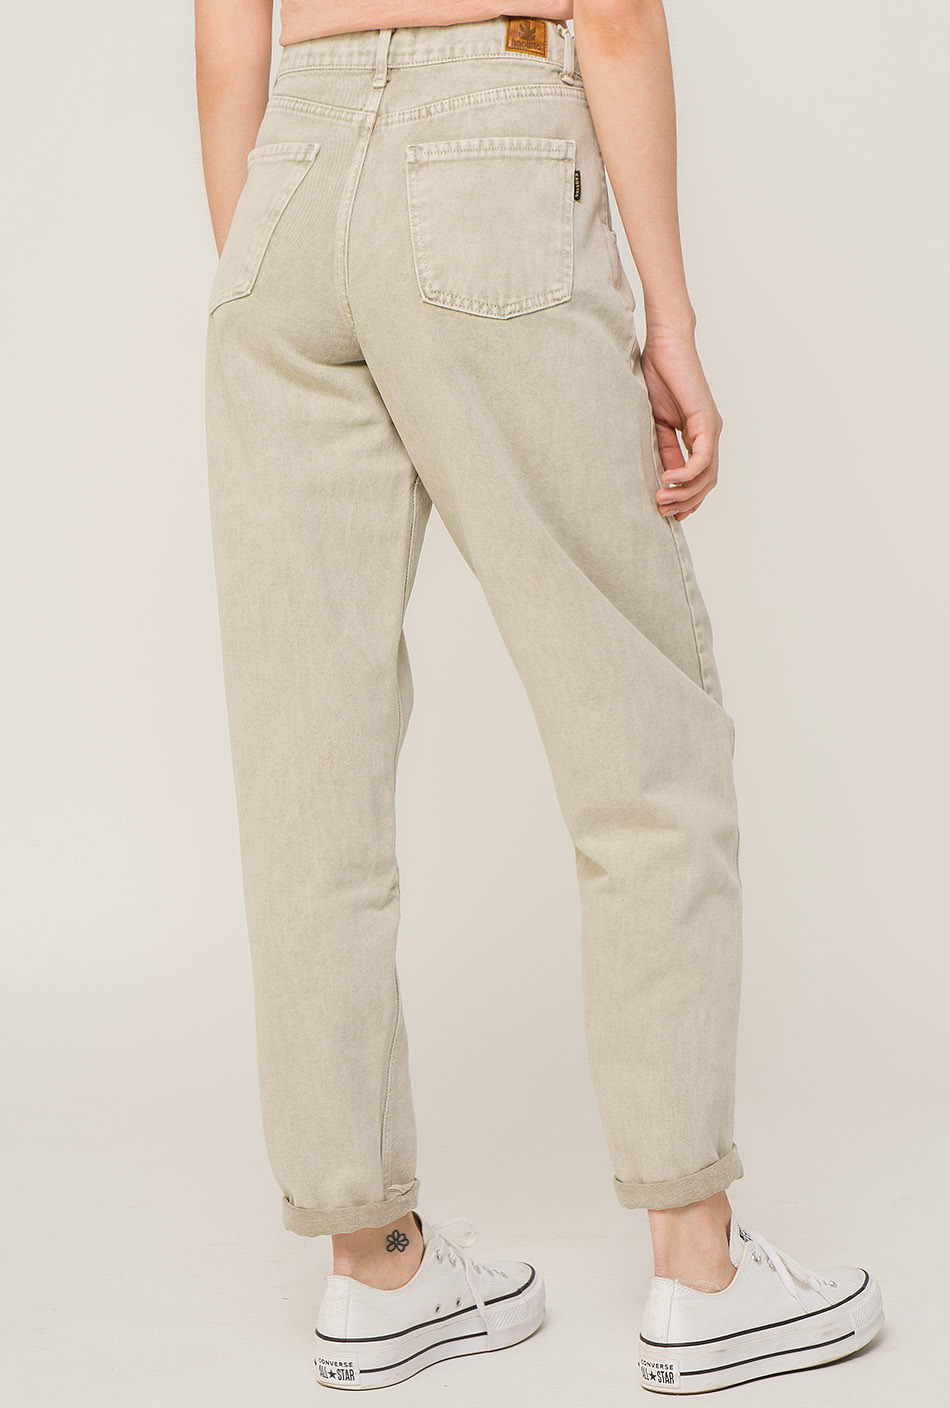 Globo Off White trousers